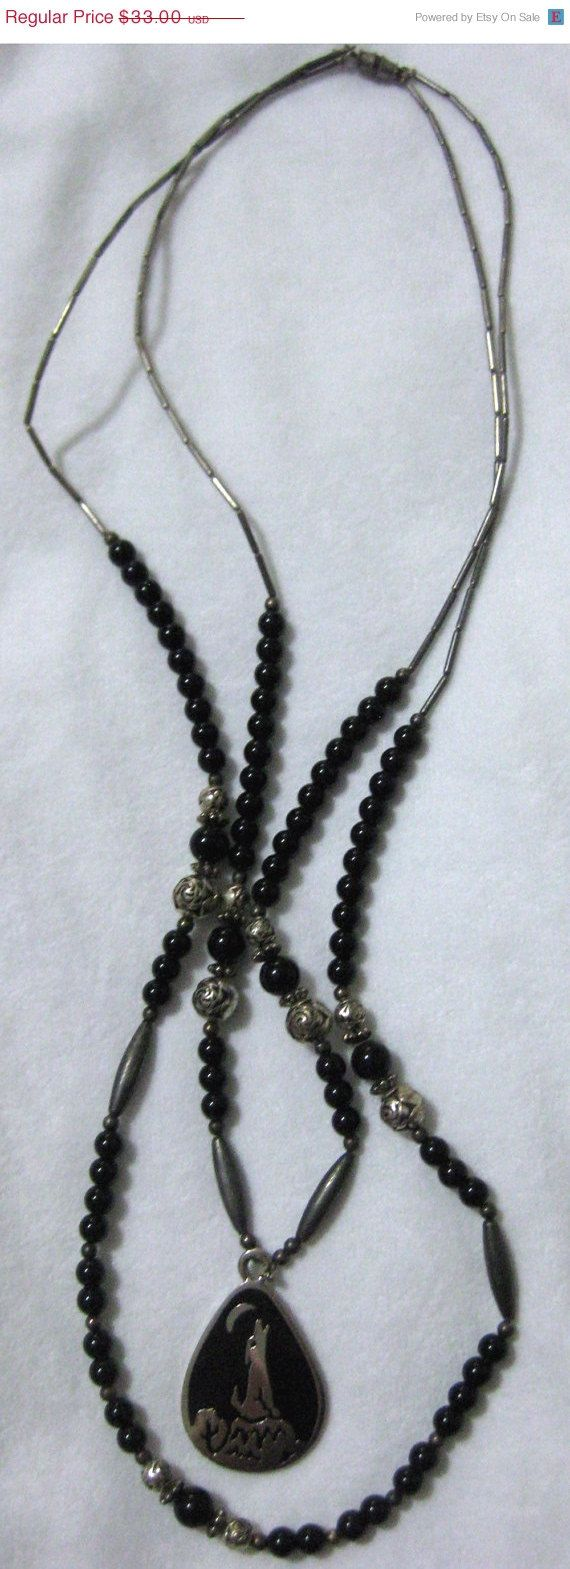 Fall Sale Vintage Black and Silver Bead-Coyote Southwest Necklace-Signed S.S.l....